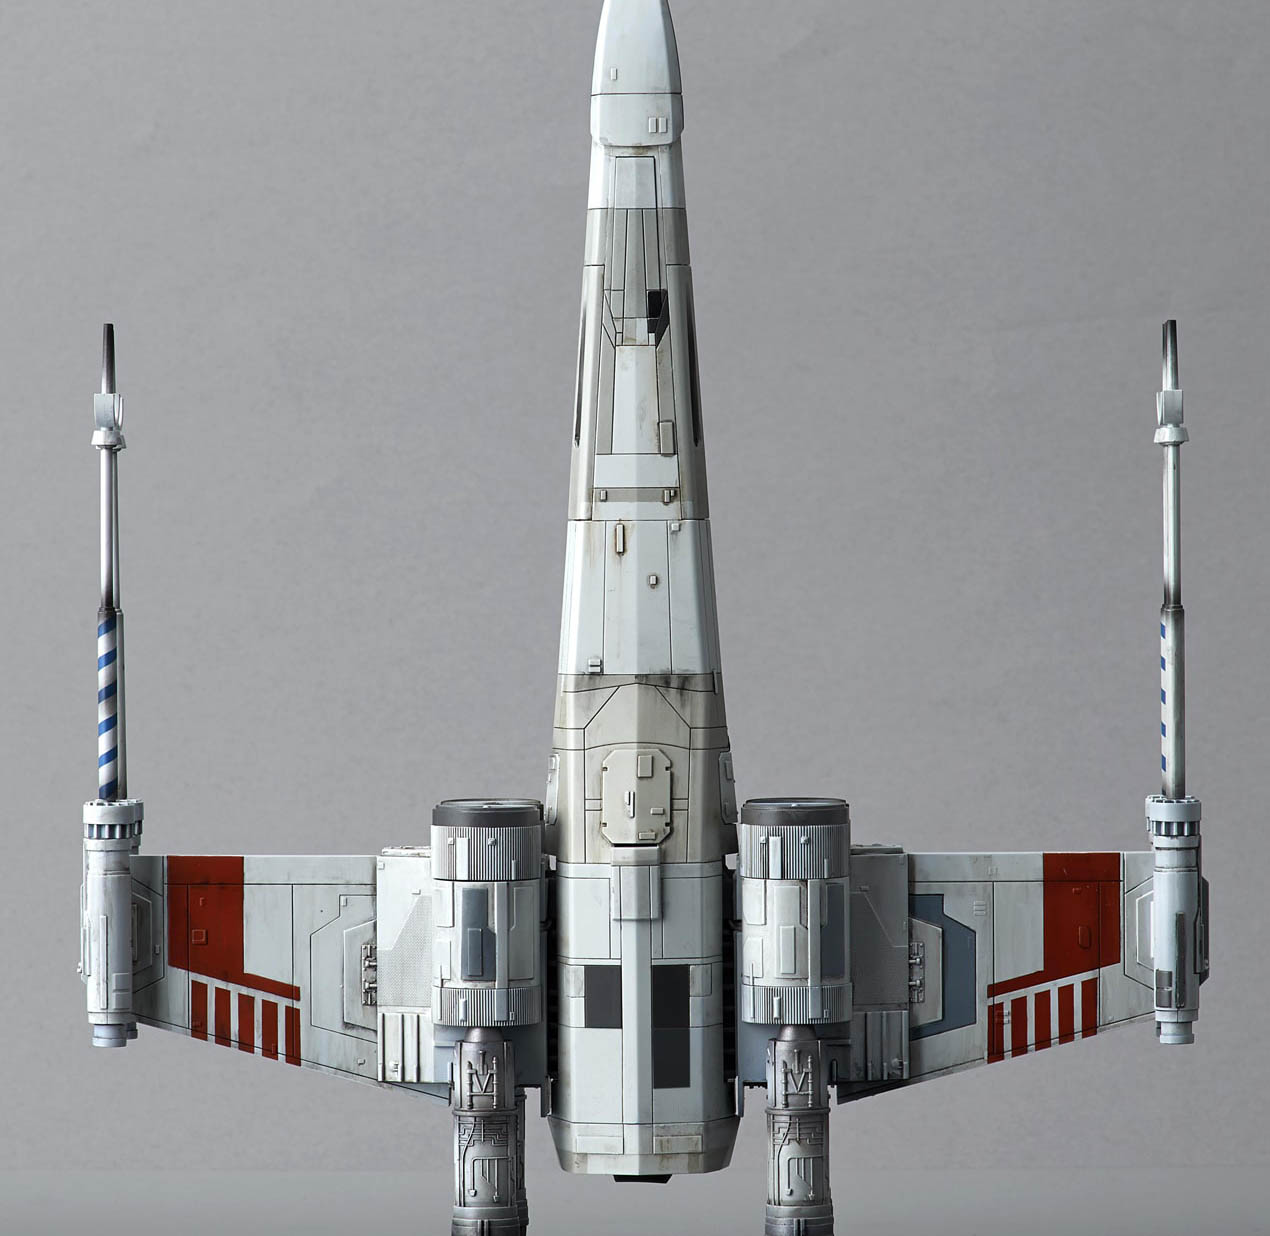 5 Behind-the-Scenes Facts About Bandai's Star Wars Model Kits